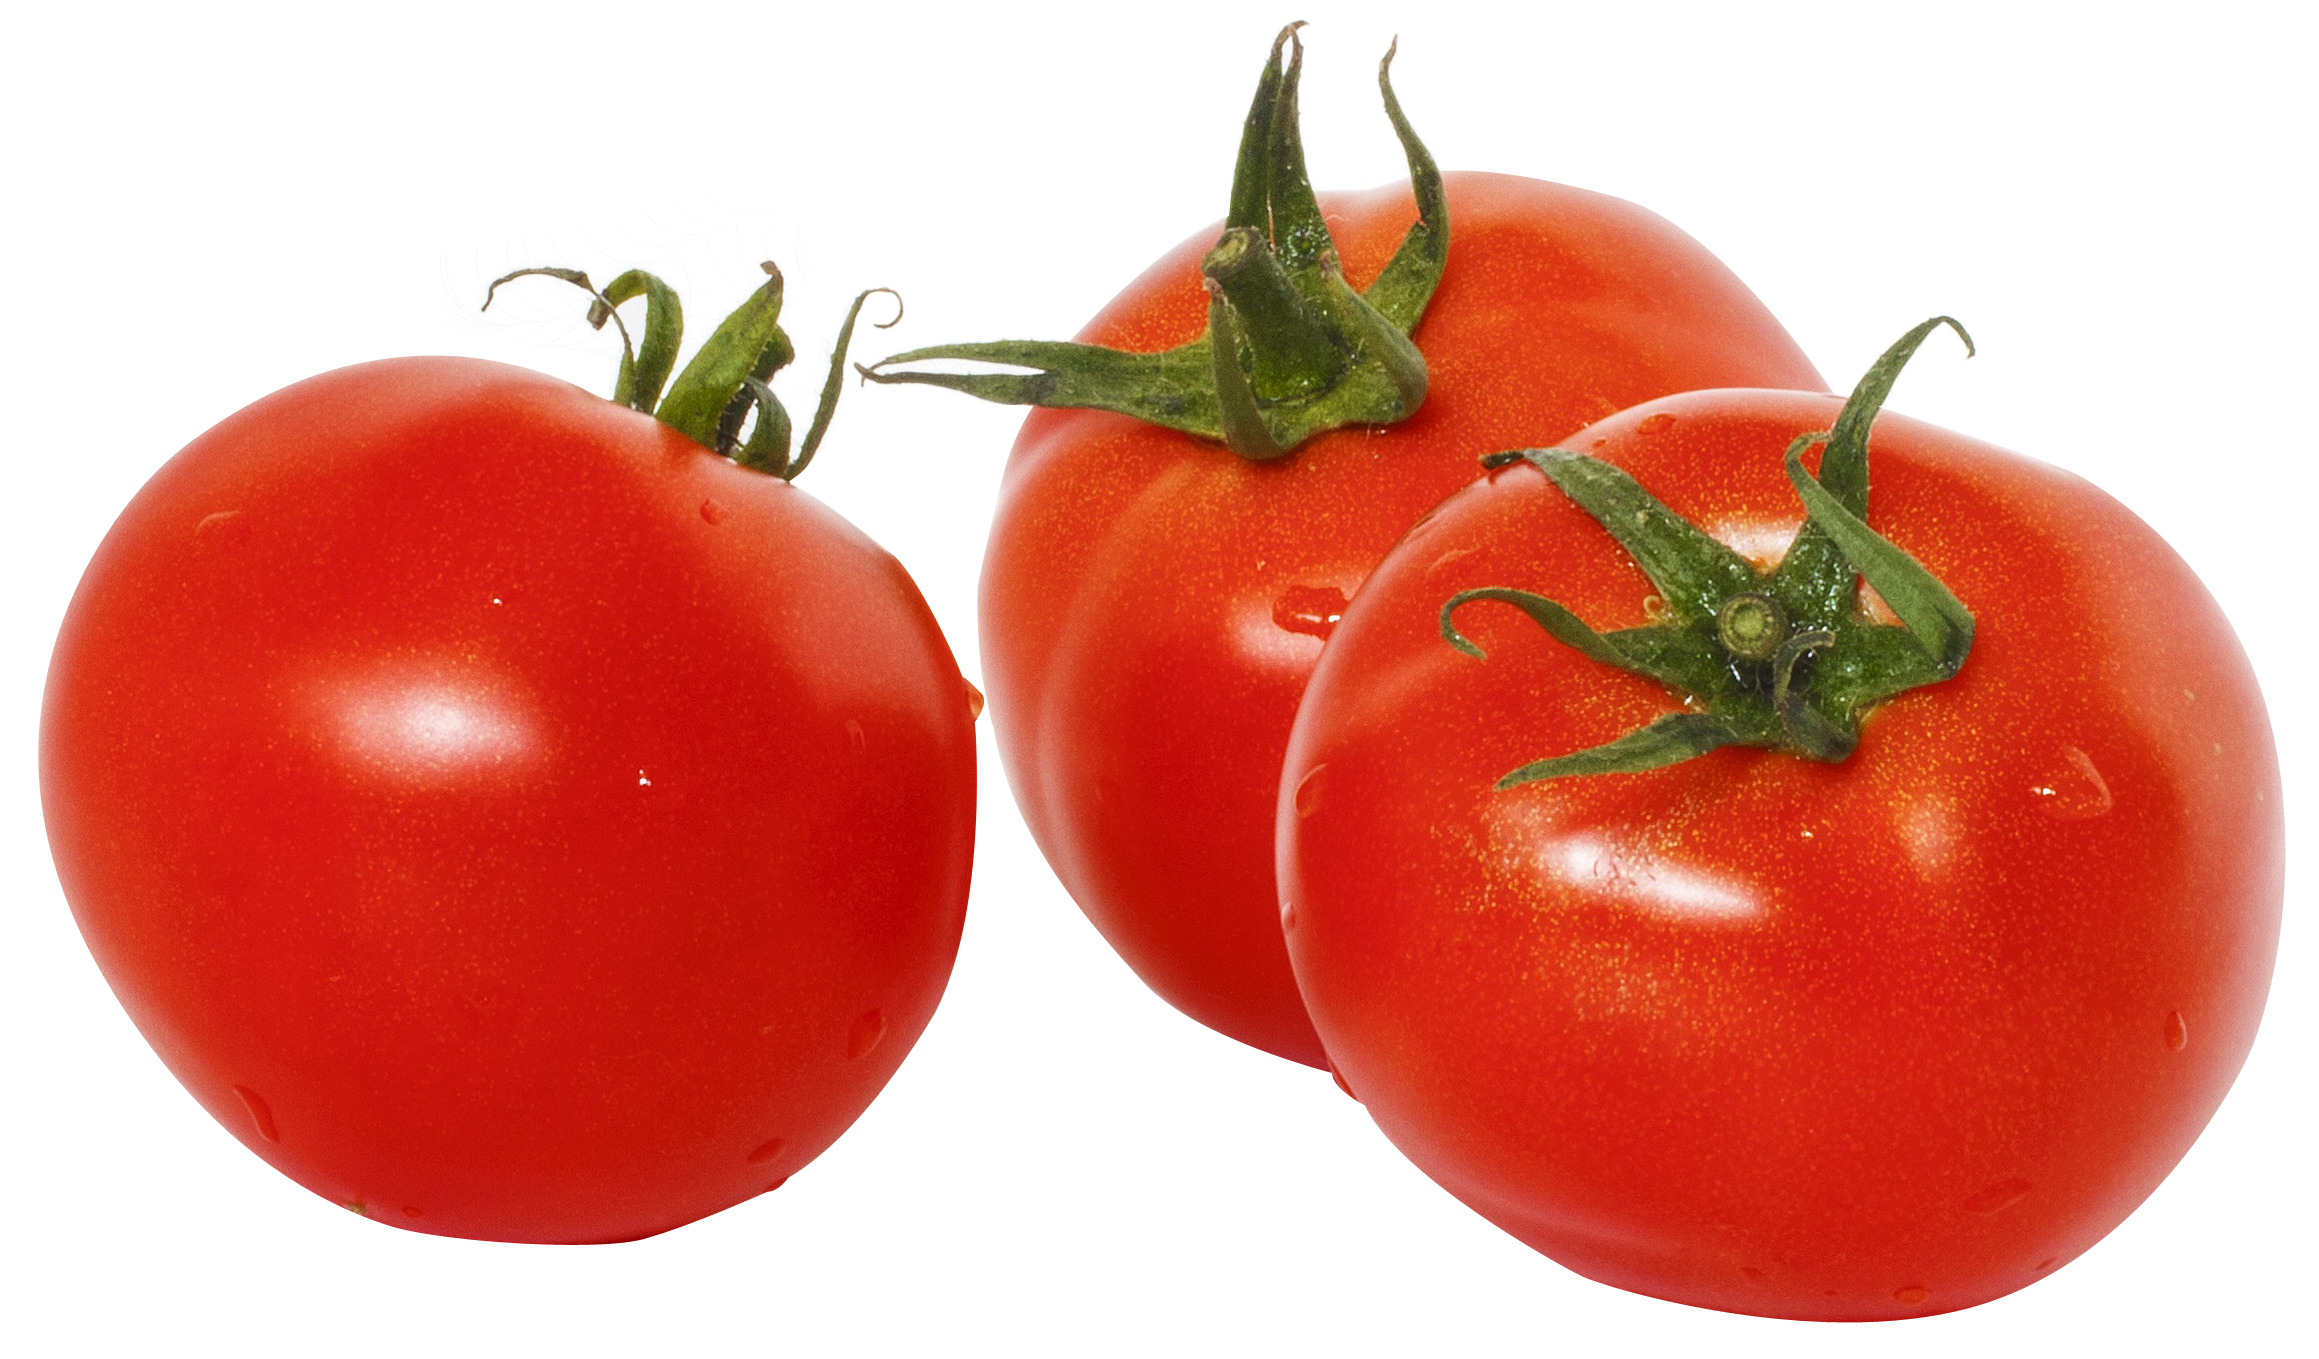 PNG Tomato - 57154